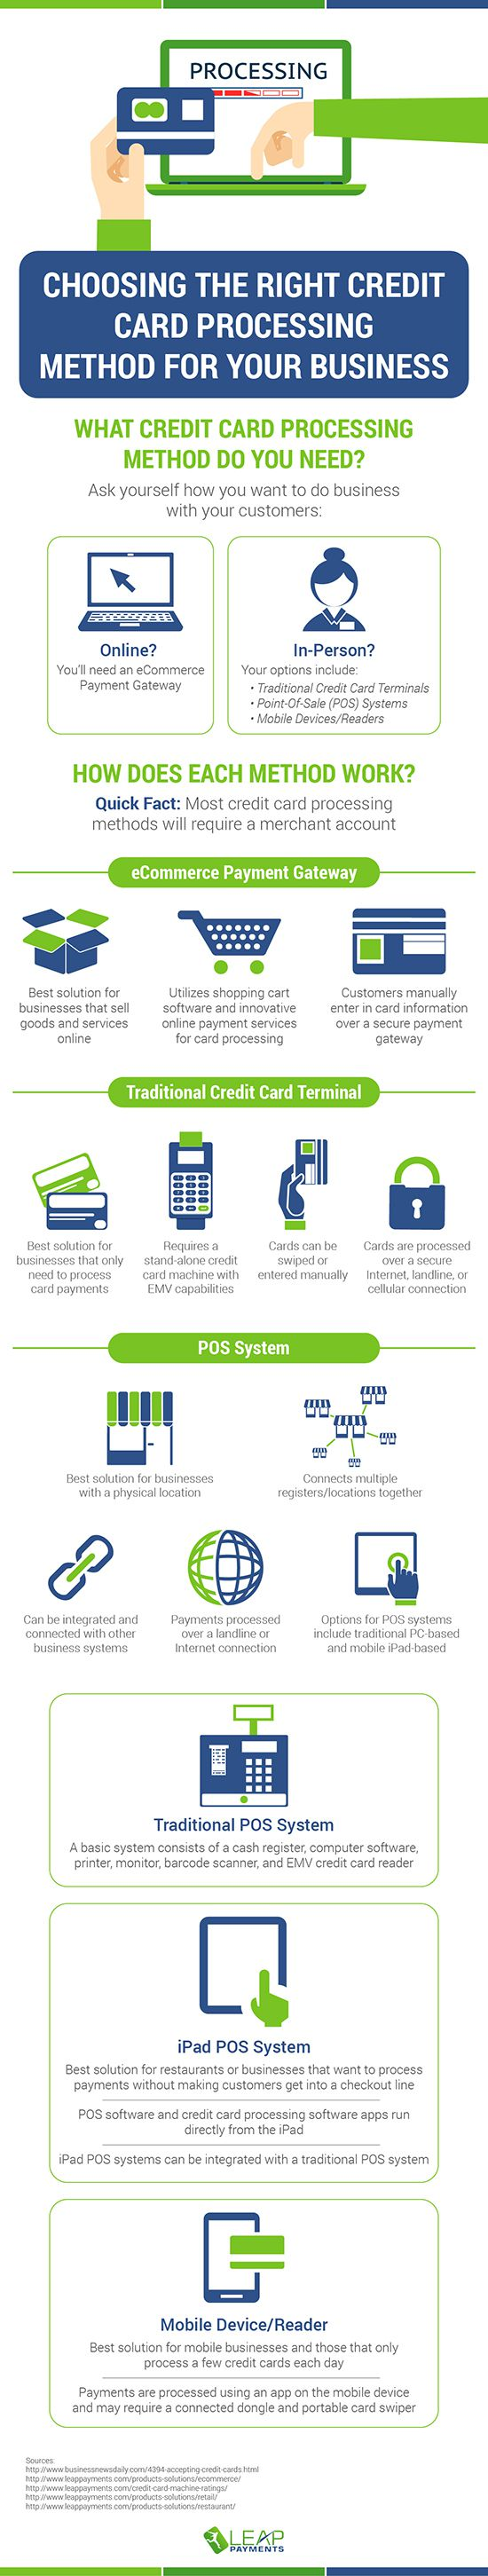 Best credit cards for business use